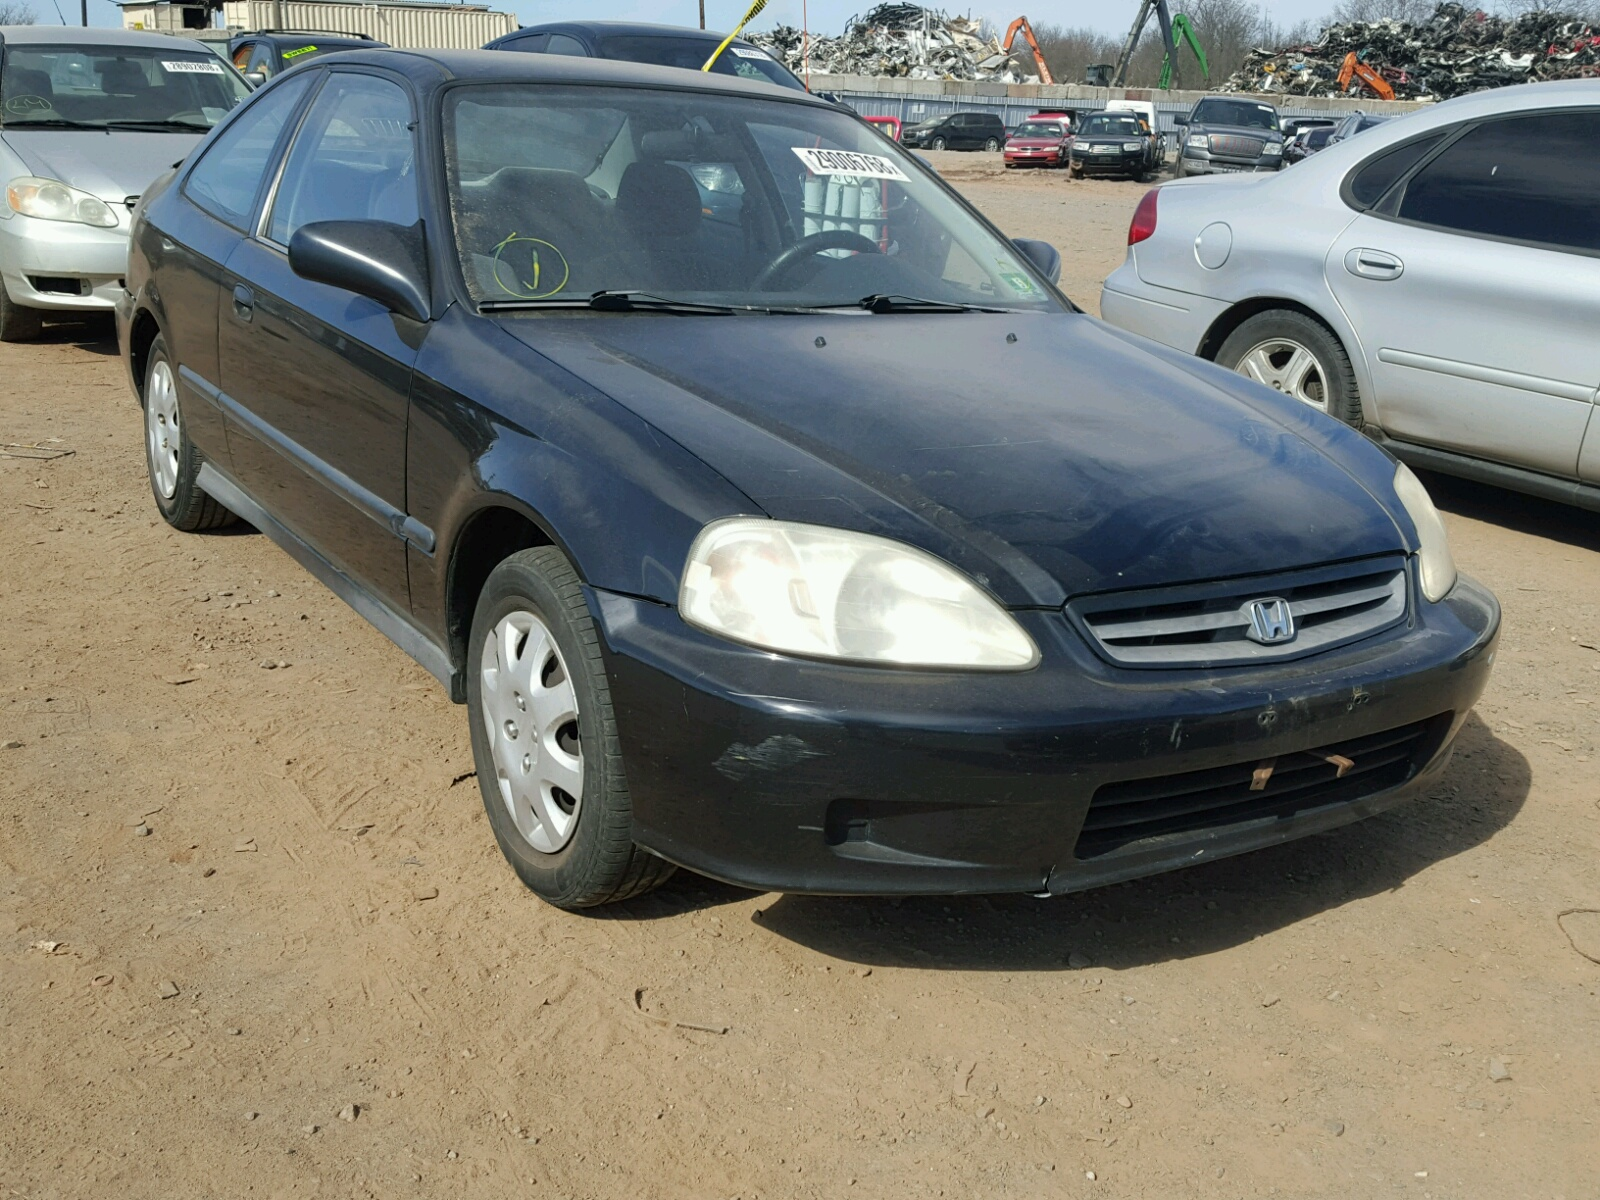 1HGEJ6223XL093420   1999 HONDA CIVIC DX 1.6L Left View